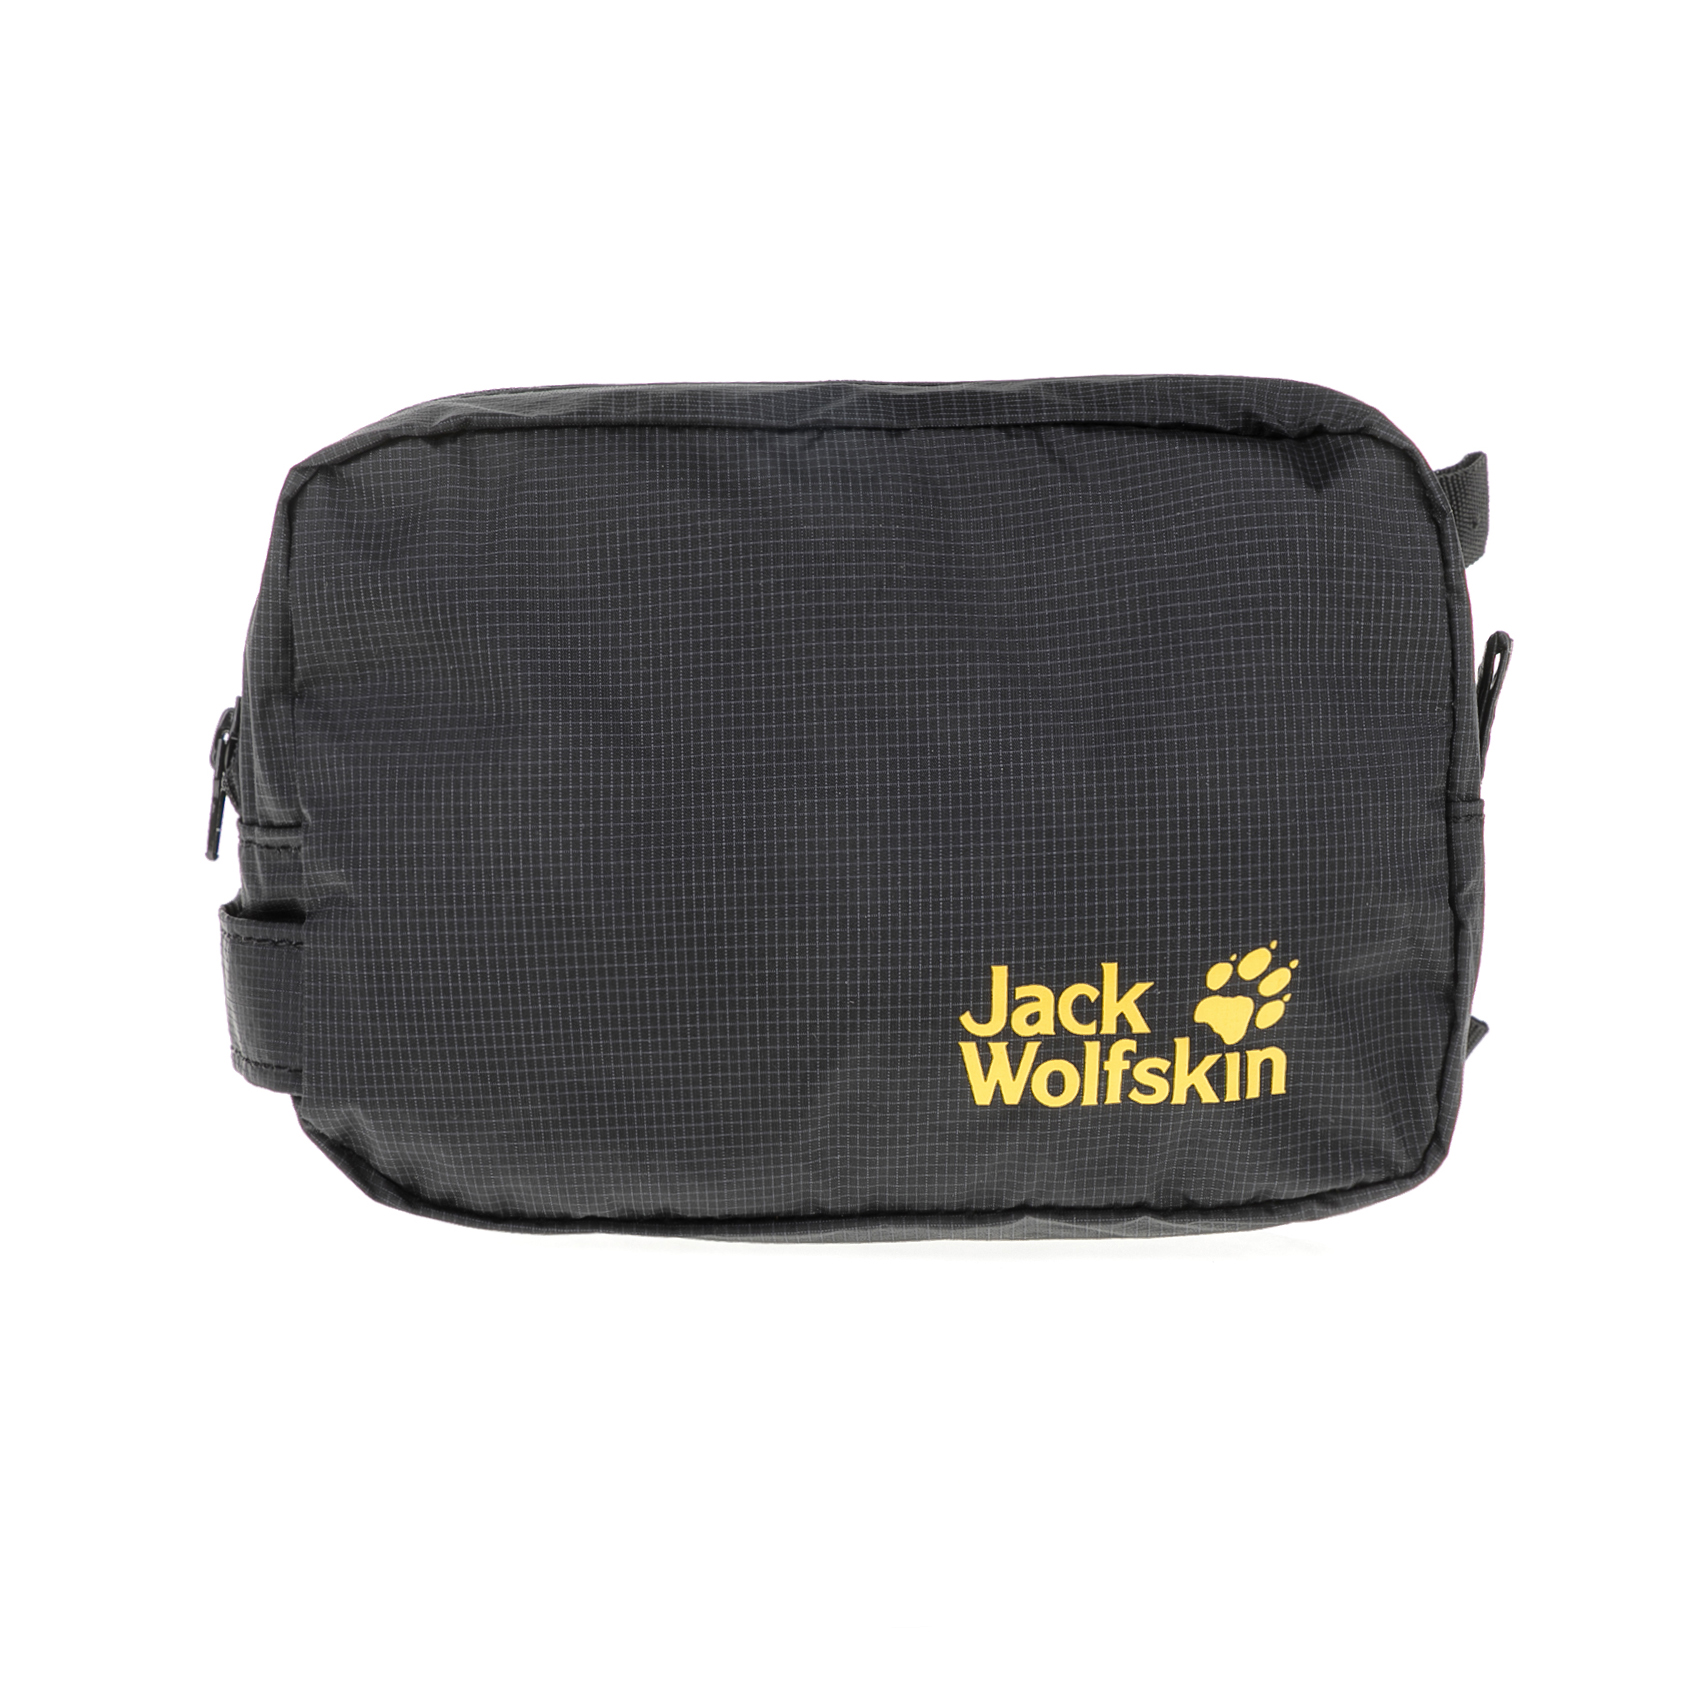 JACK WOLFSKIN – Unisex τσαντάκι ALL-IN 1 POUCH POUCH EQUIPMENT μαύρο 1635967.0-0071